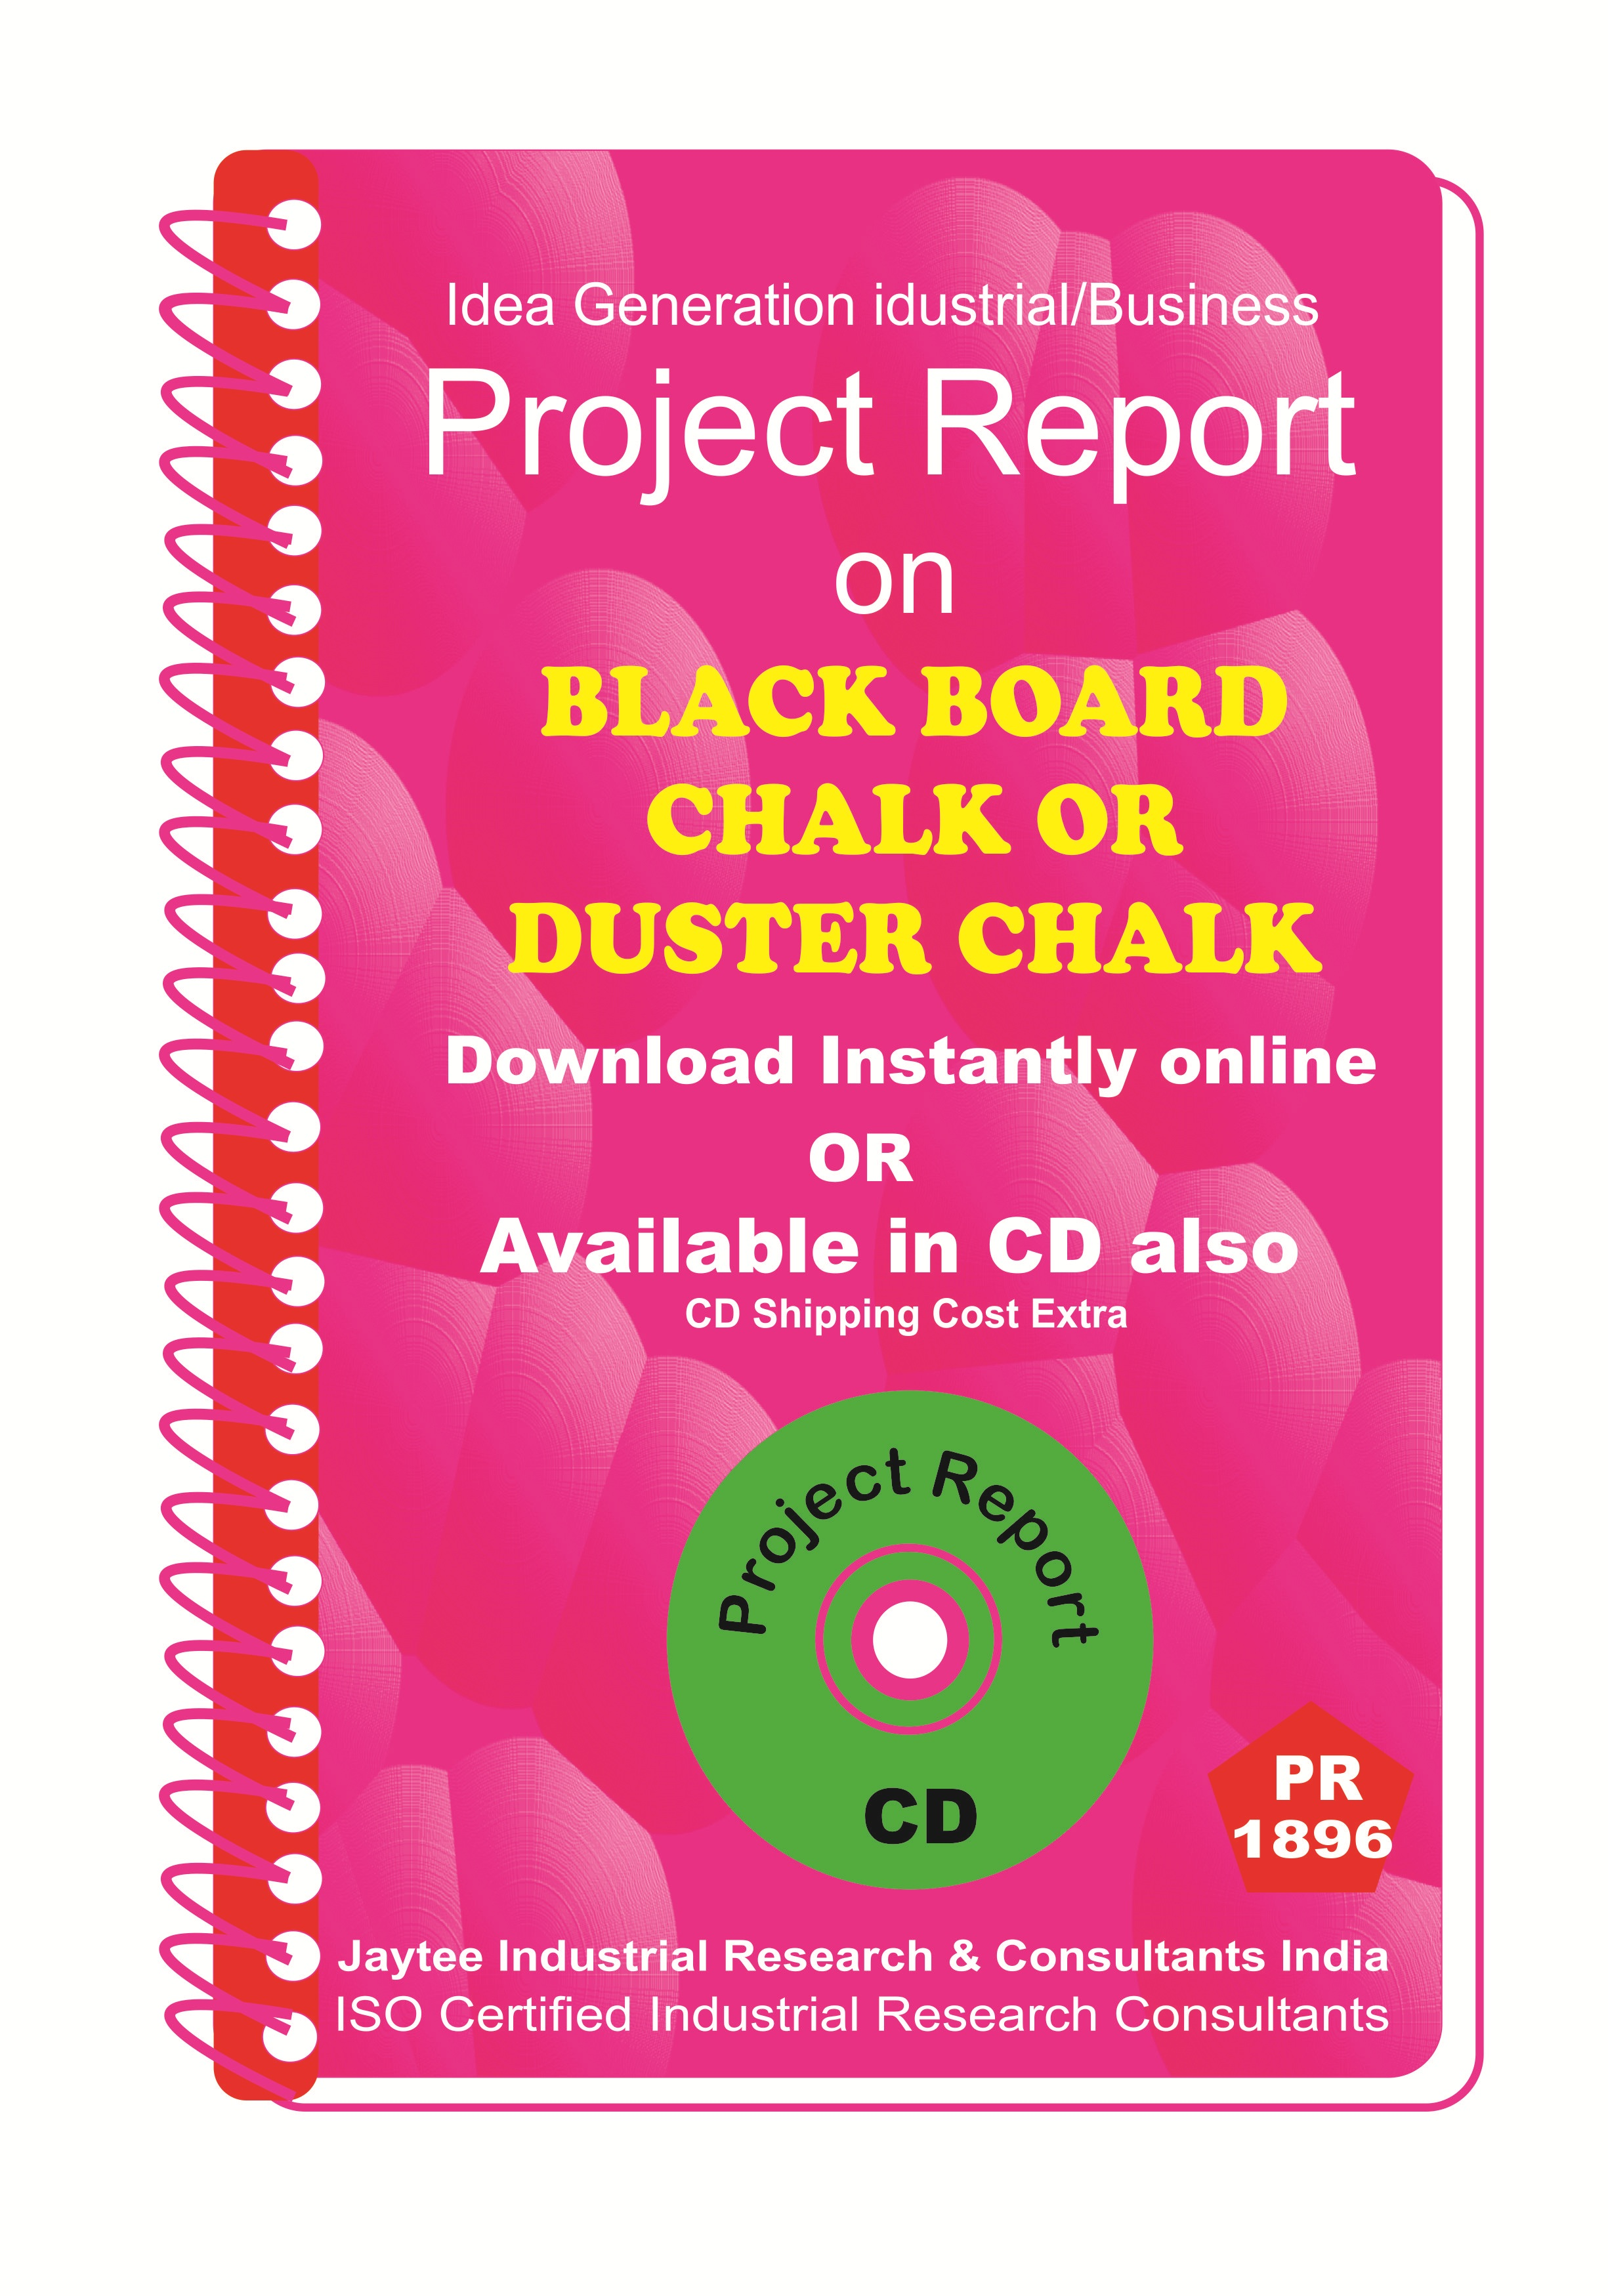 Black Board Chalk or Duster Chalk Project Report eBook